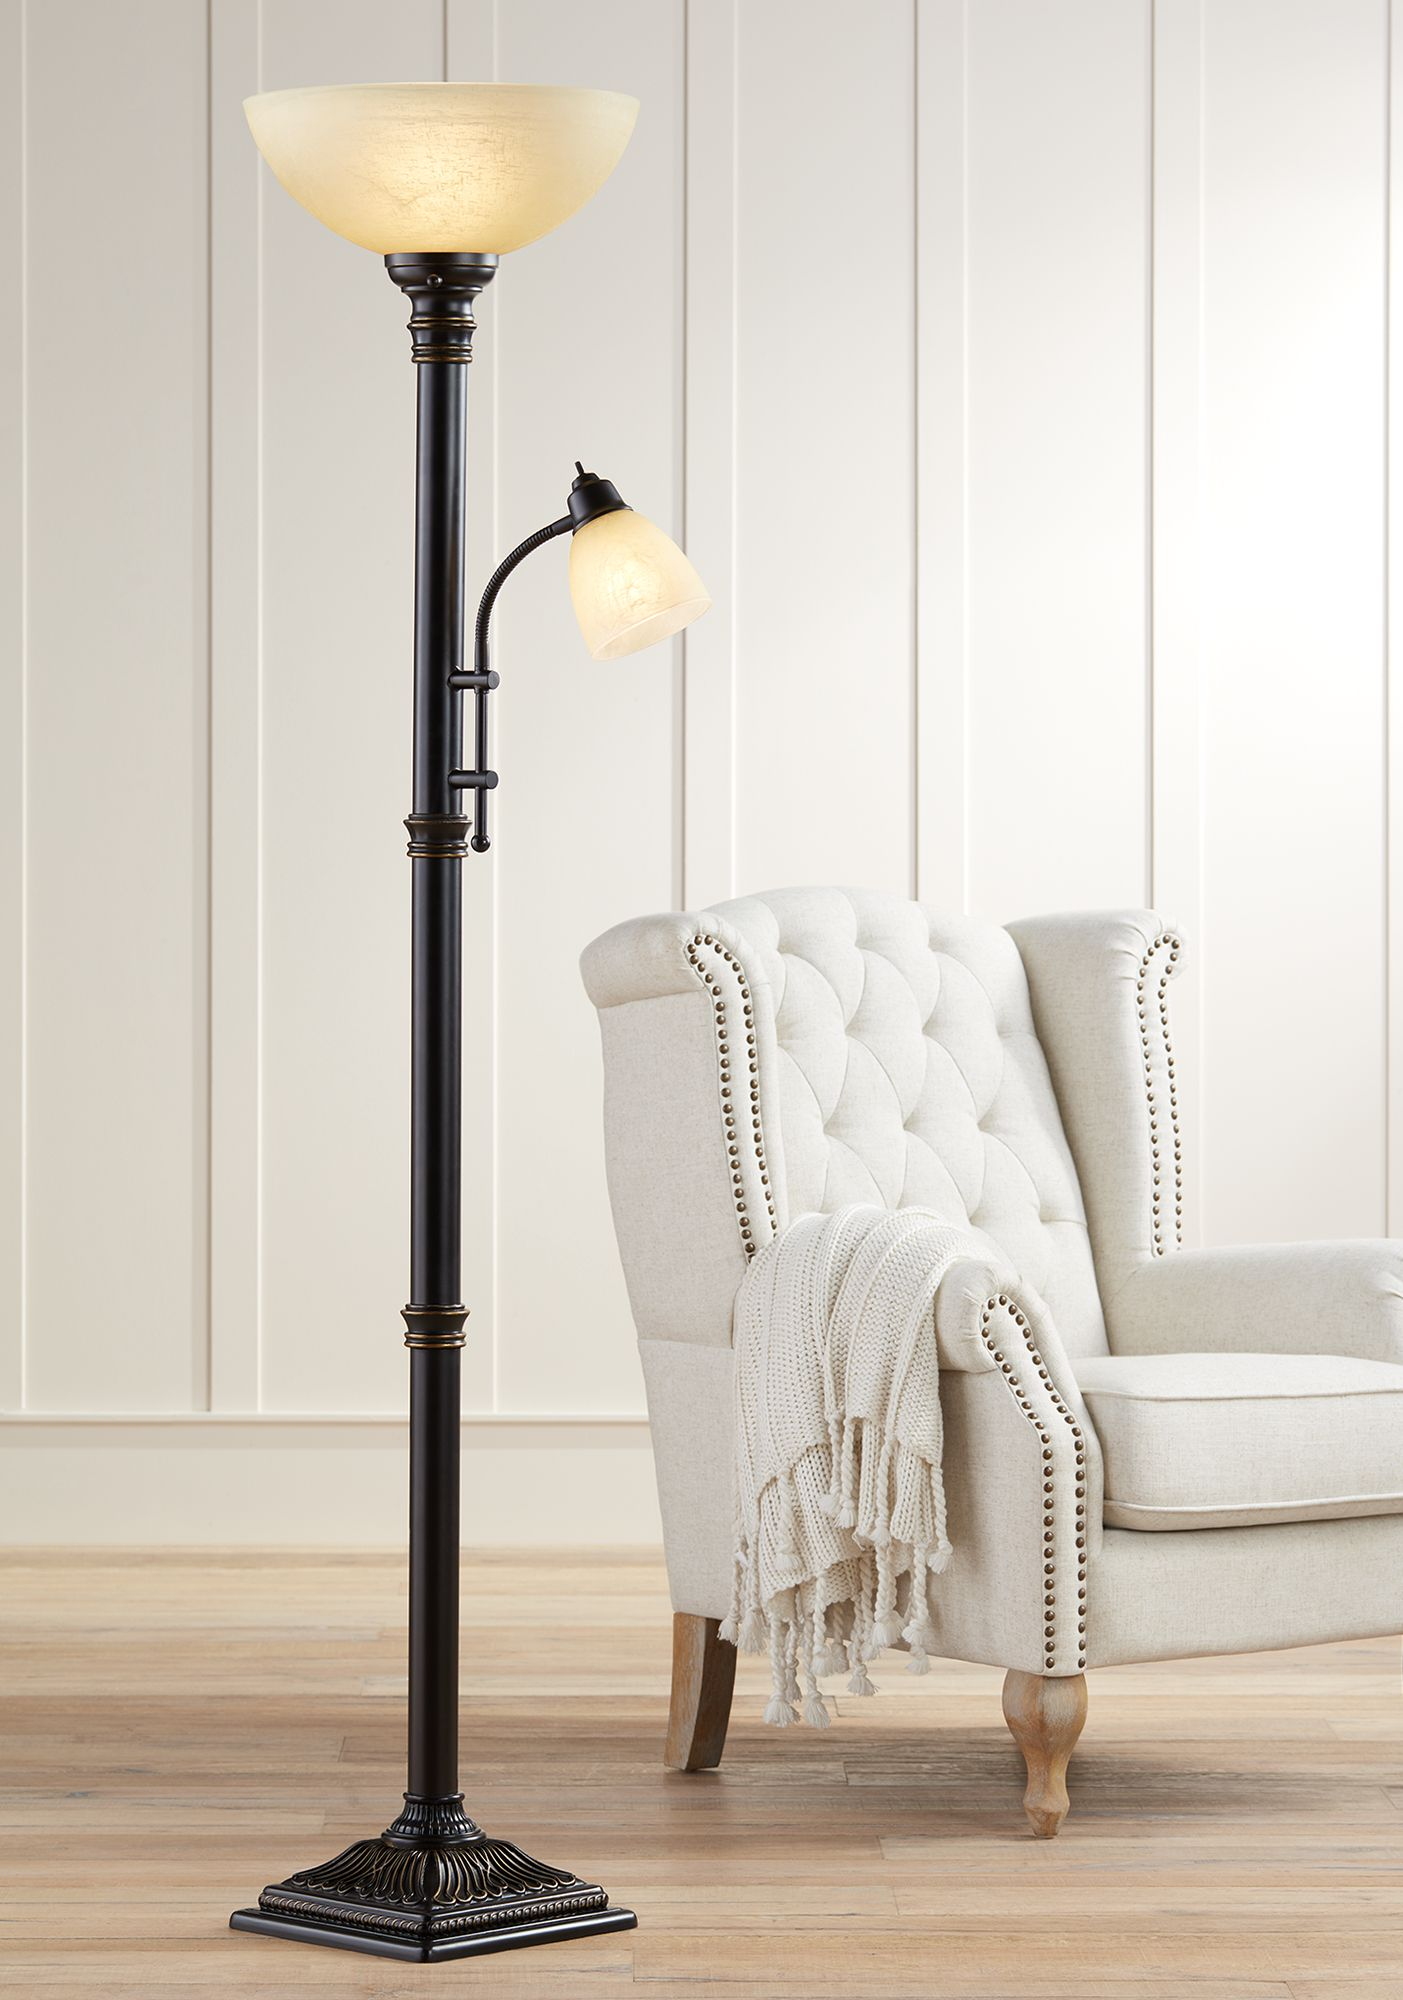 Reading lamps Garver Bronze Torchiere floor lamp with reading arm HNJDMZZ